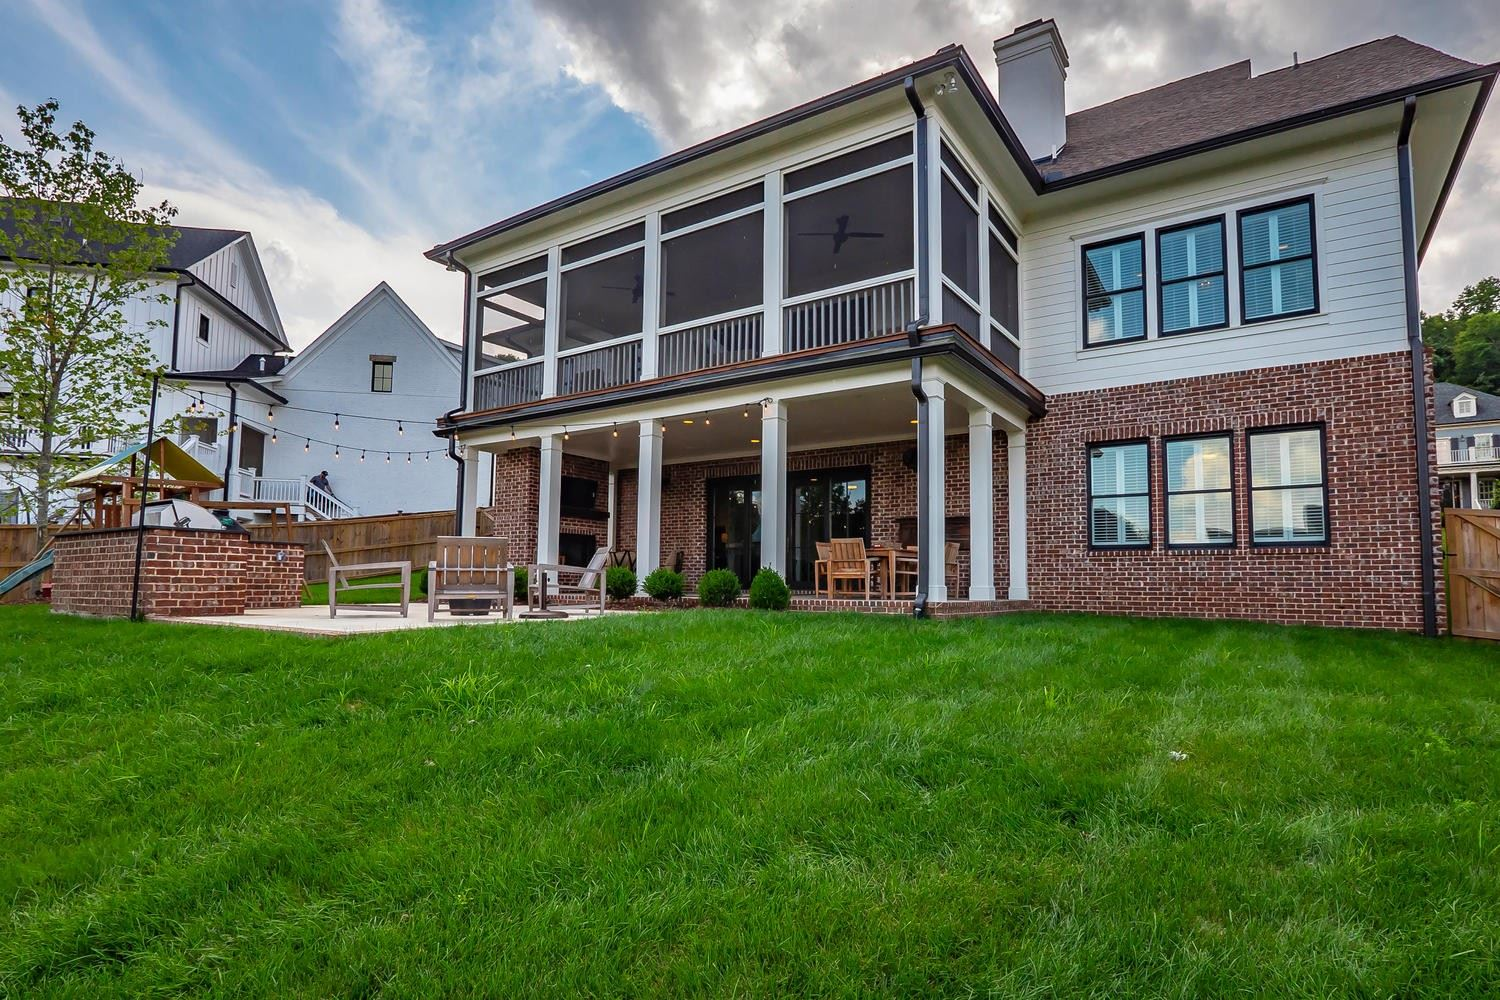 Photo of 448 Wild Elm St, Franklin, TN 37064 (MLS # 2137968)